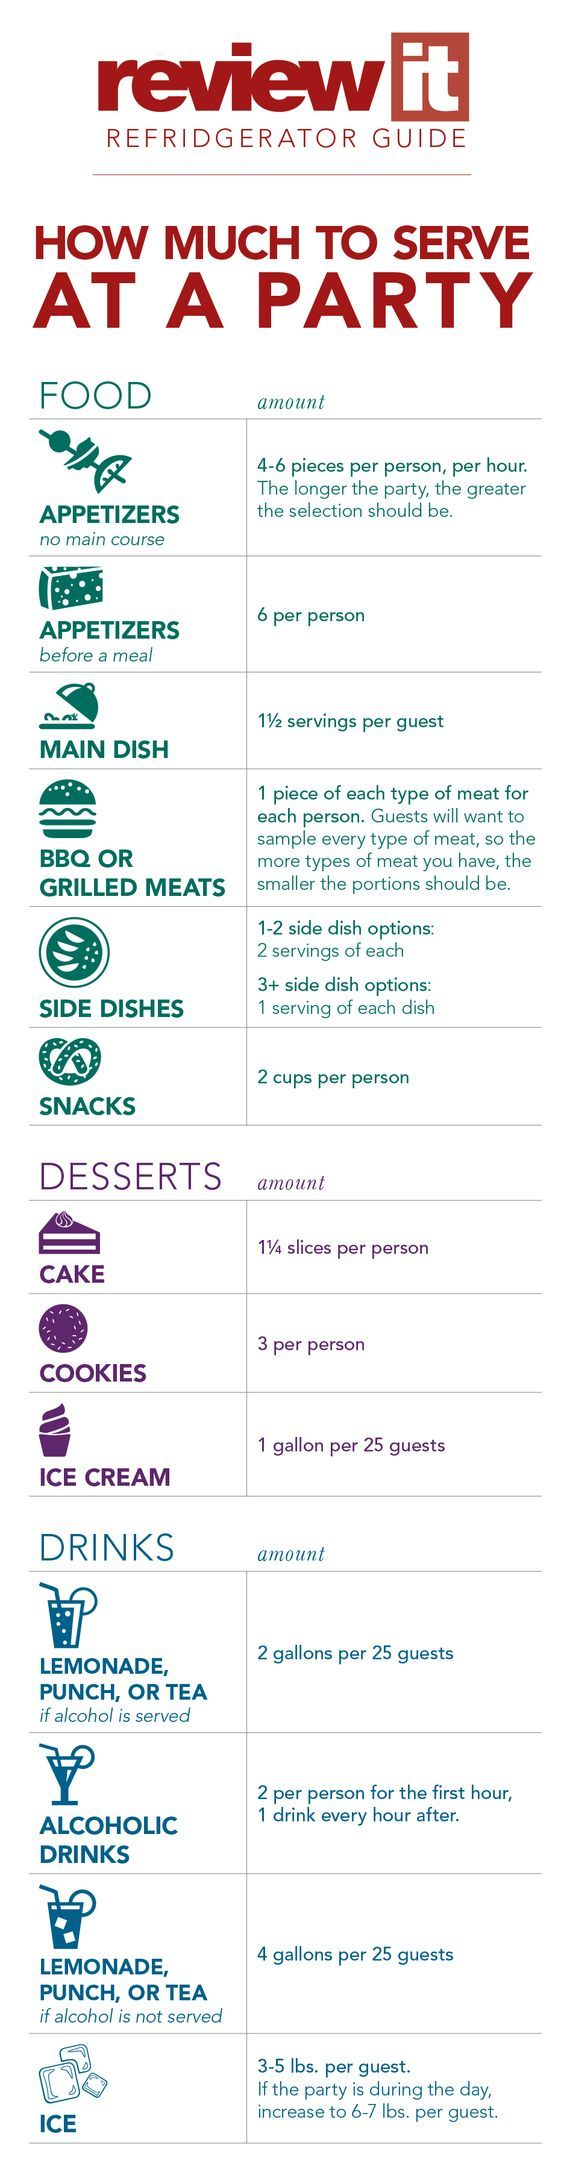 How much food to serve at a party - for more tips and tricks to planning party food: